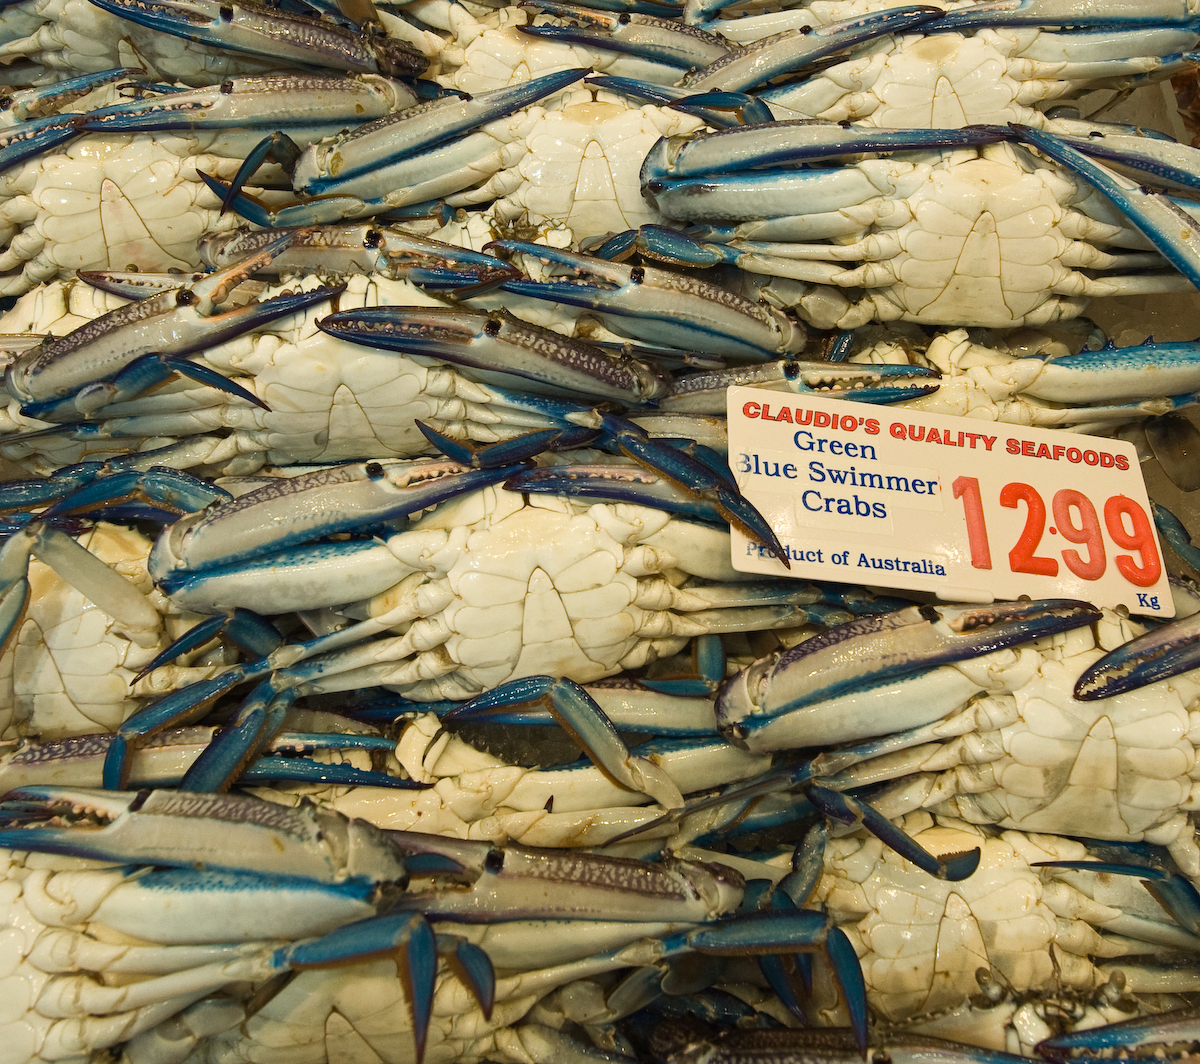 Sydney Fish Market (1 of 2)